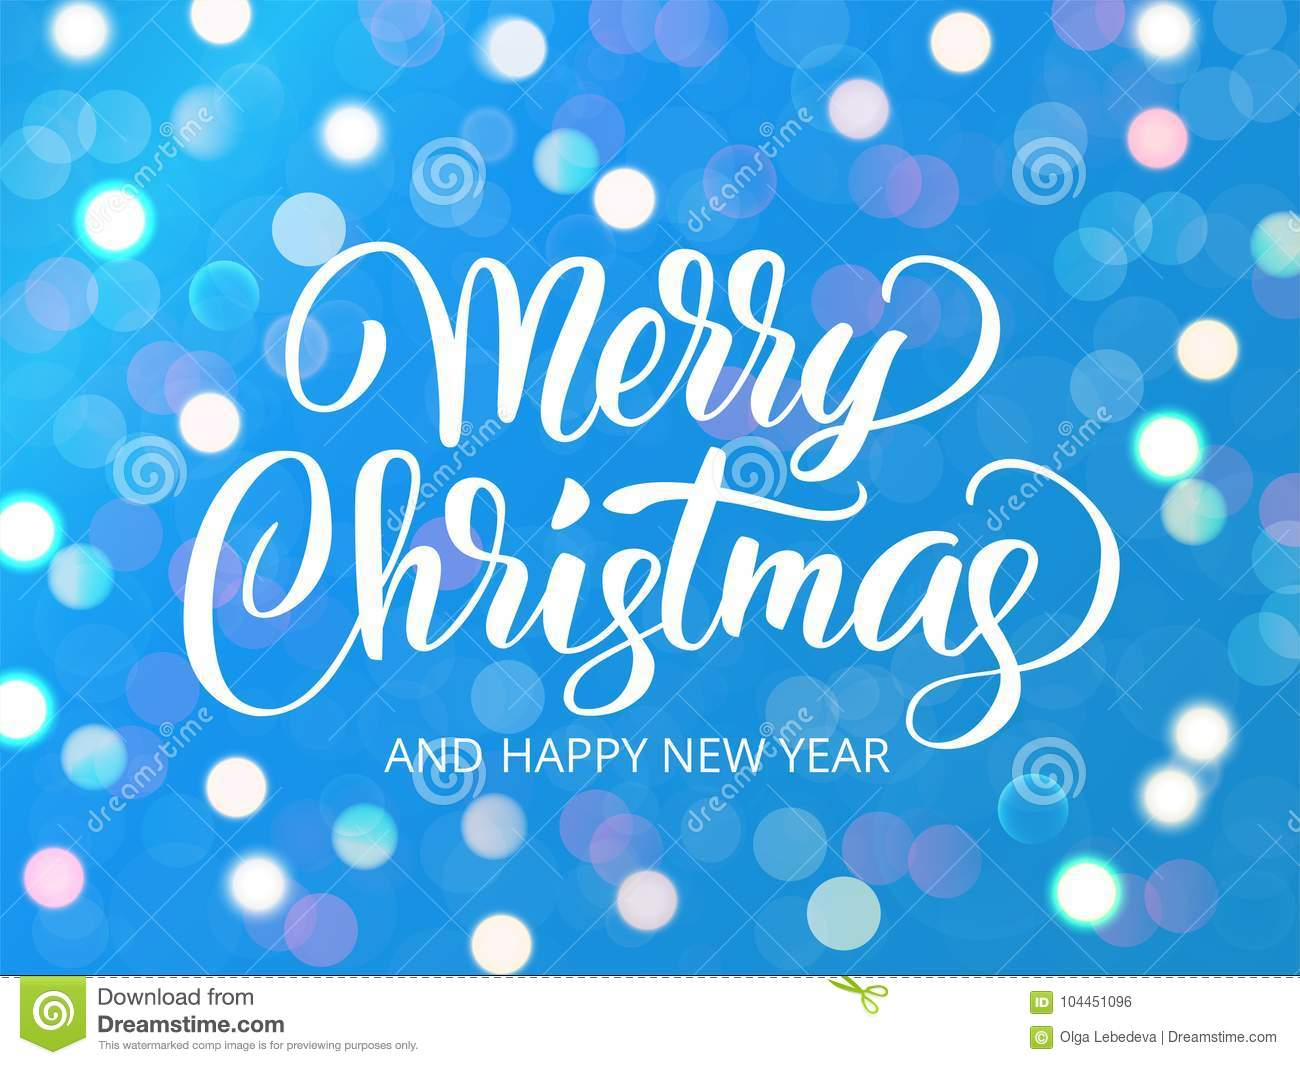 Merry christmas and happy new year text holiday greetings quote white and blue sparkling glowing lights background holiday greetings quote great for christmas and new year cards party posters gift tags m4hsunfo